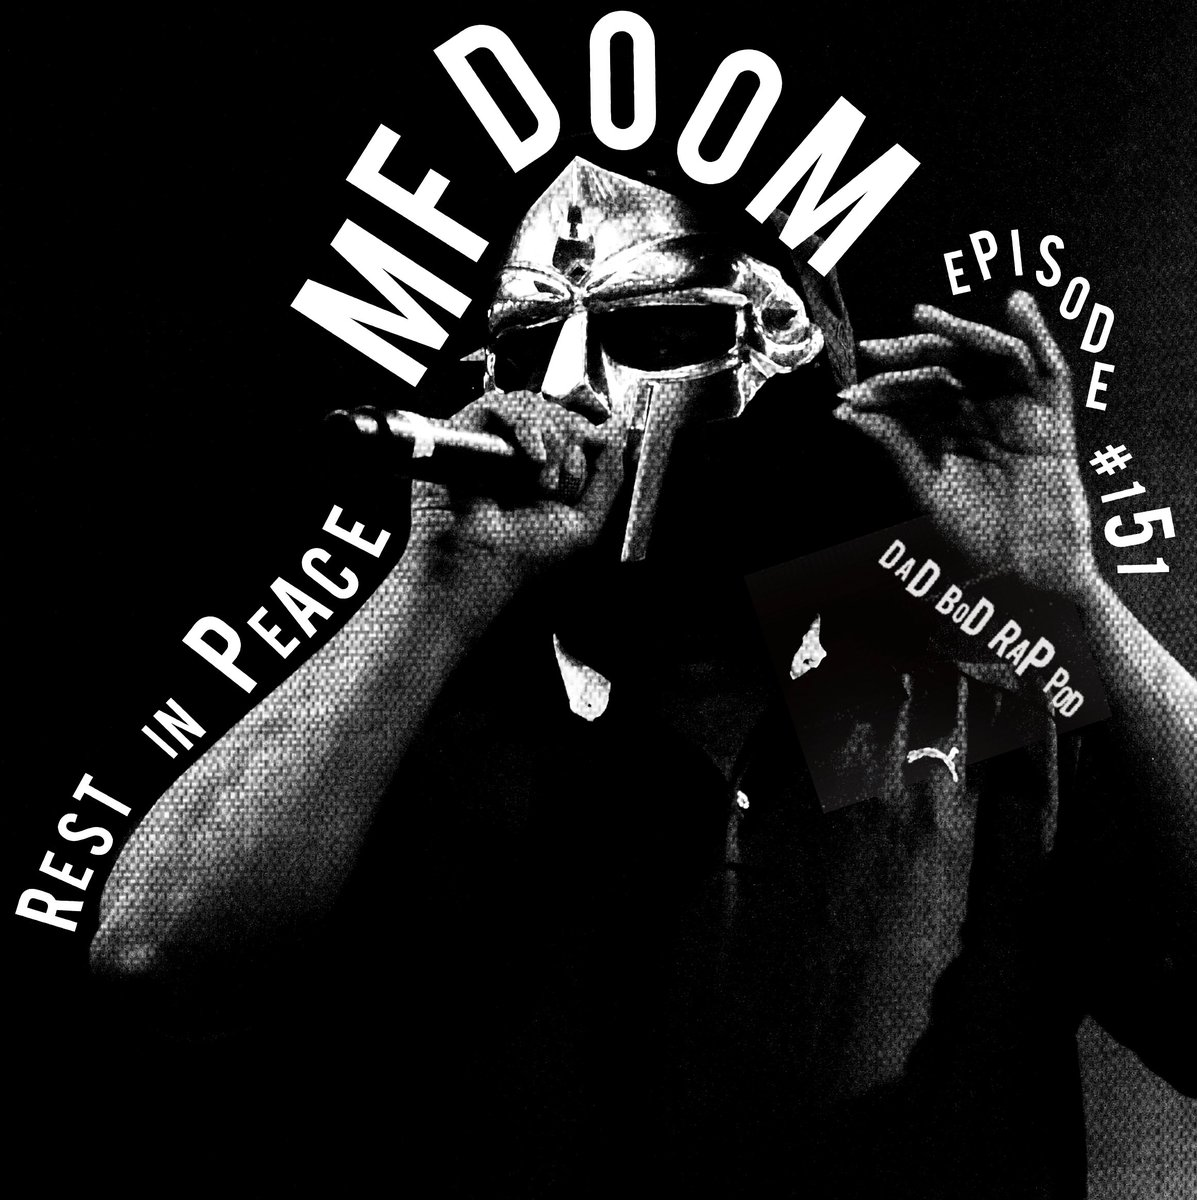 on this week's @DadBodRapPod I join the show to talk about the life and impact of MF DOOM after his passing then hosts @_davidma @natejleblanc and @lifeafterhiphop share their own stories of his music meant to them